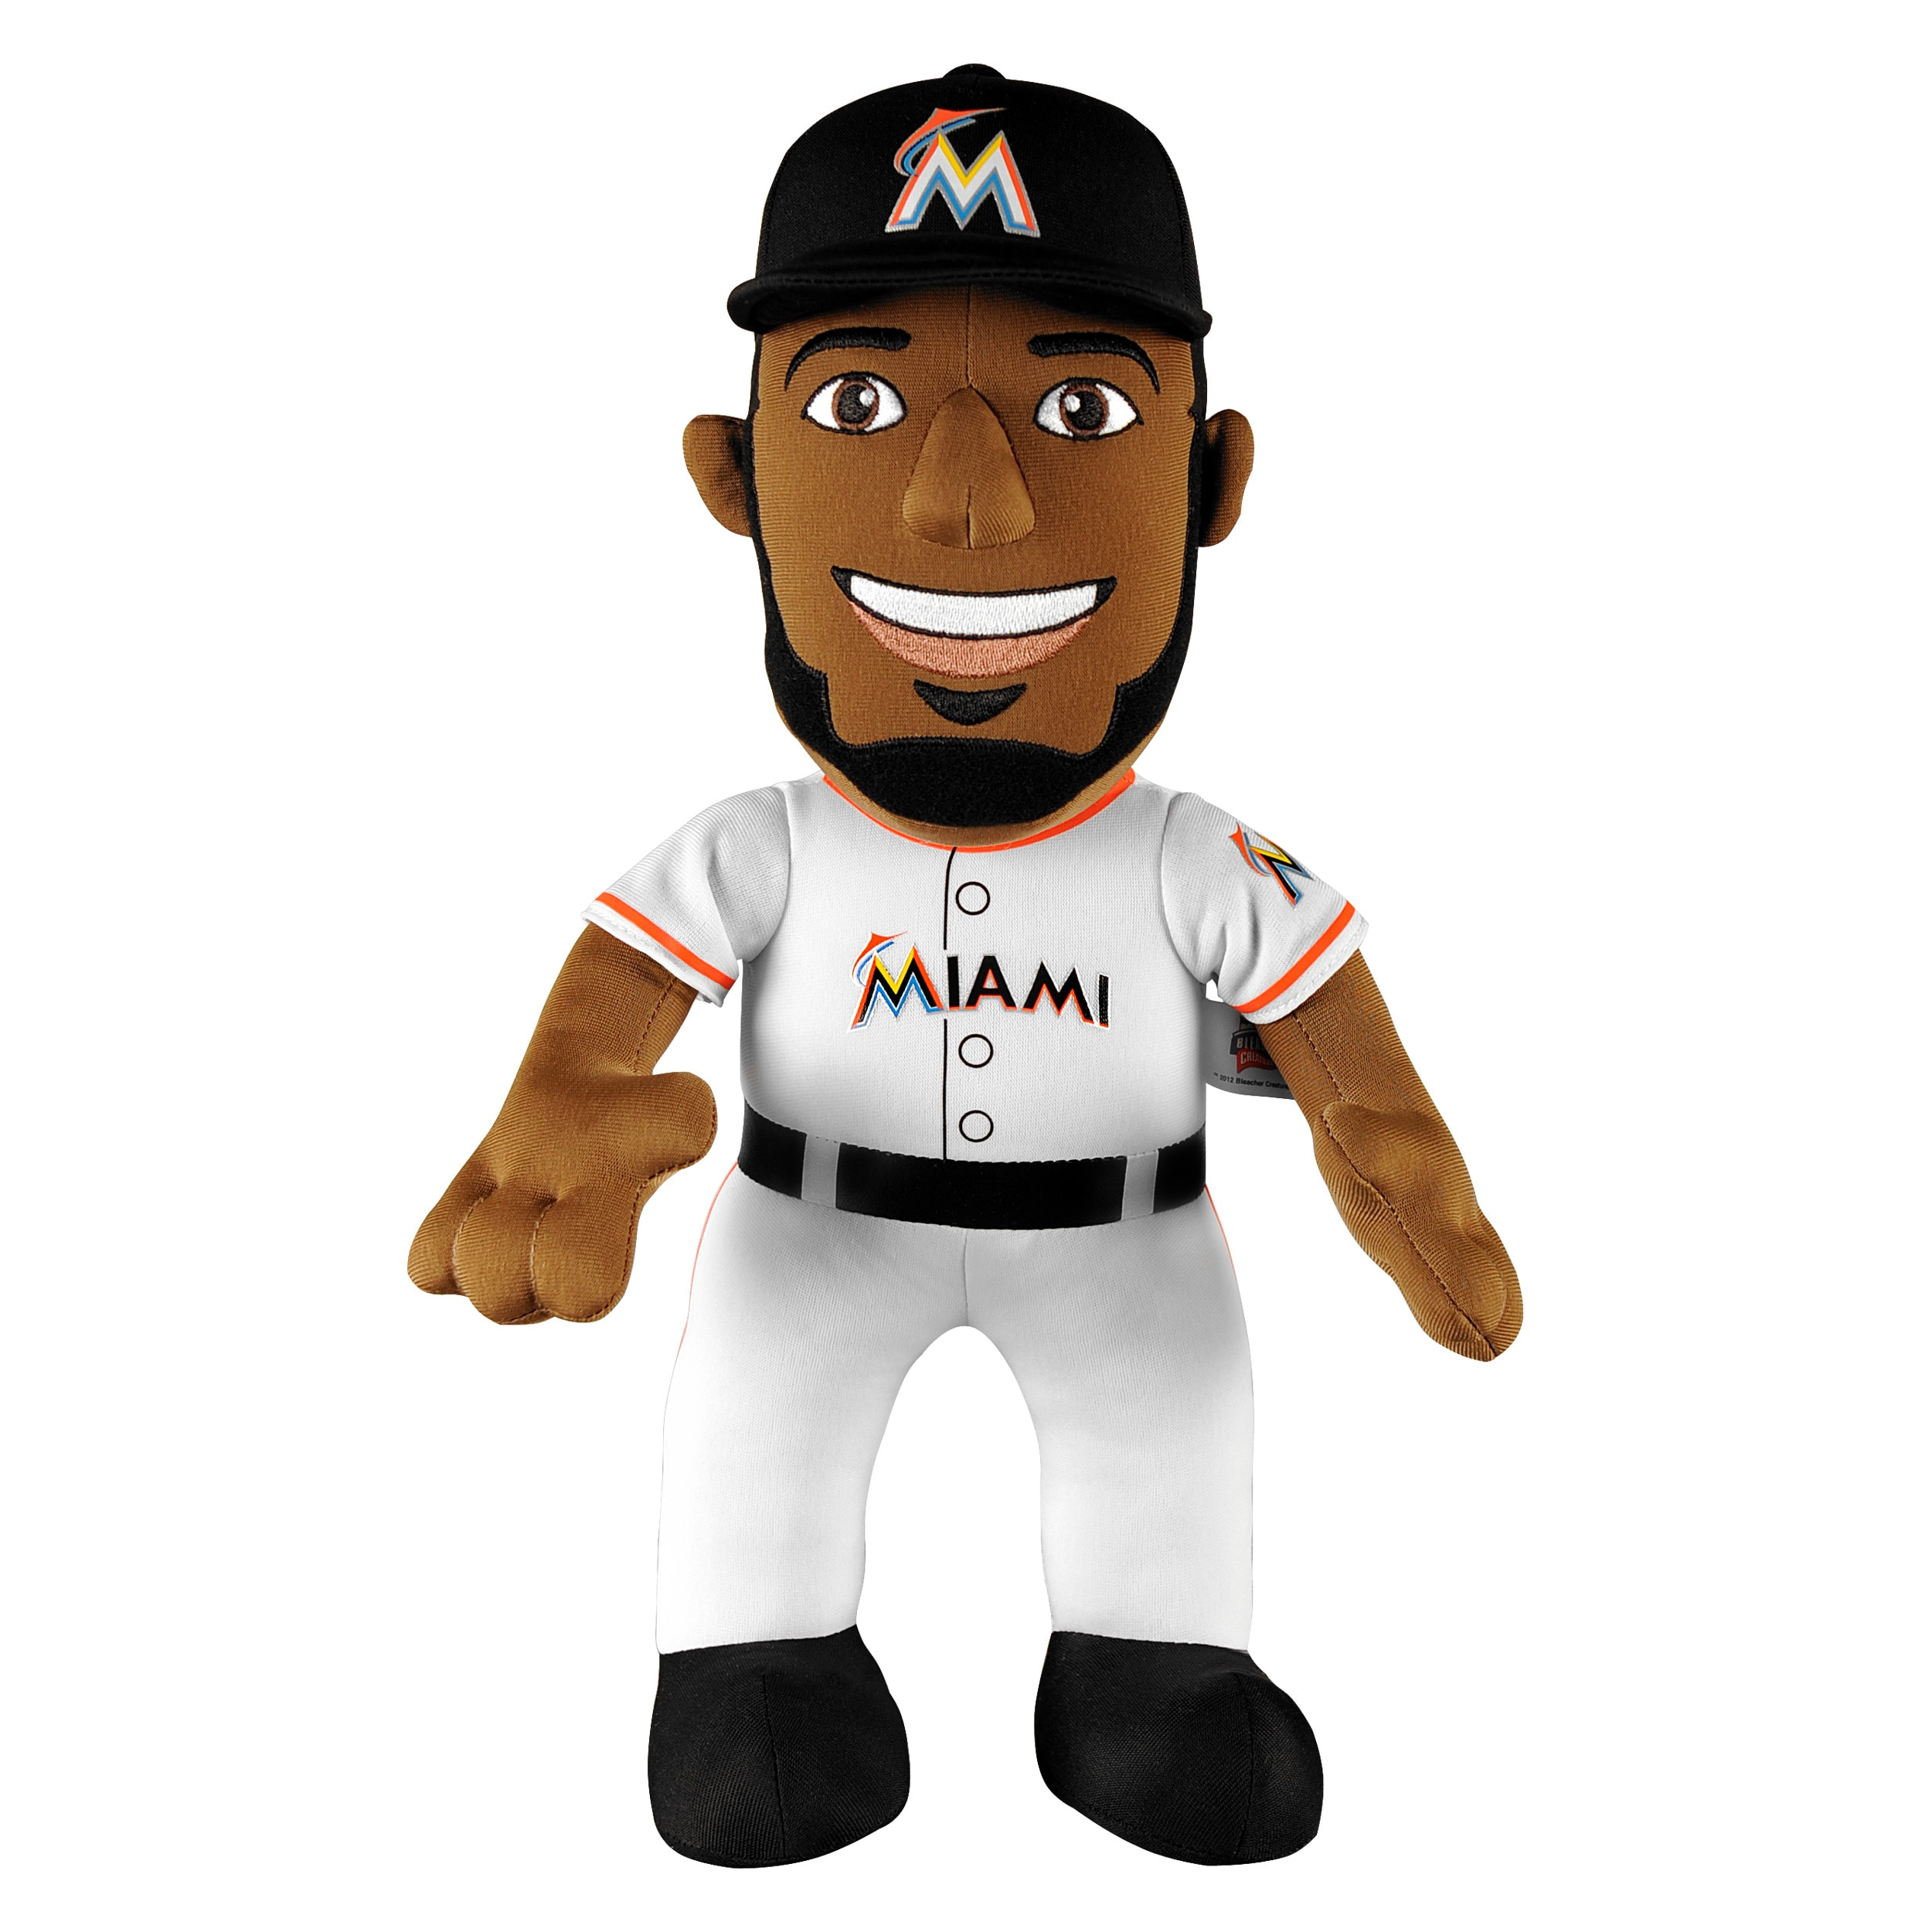 Miami Marlins Jose Reyes 14-inch Plush Doll